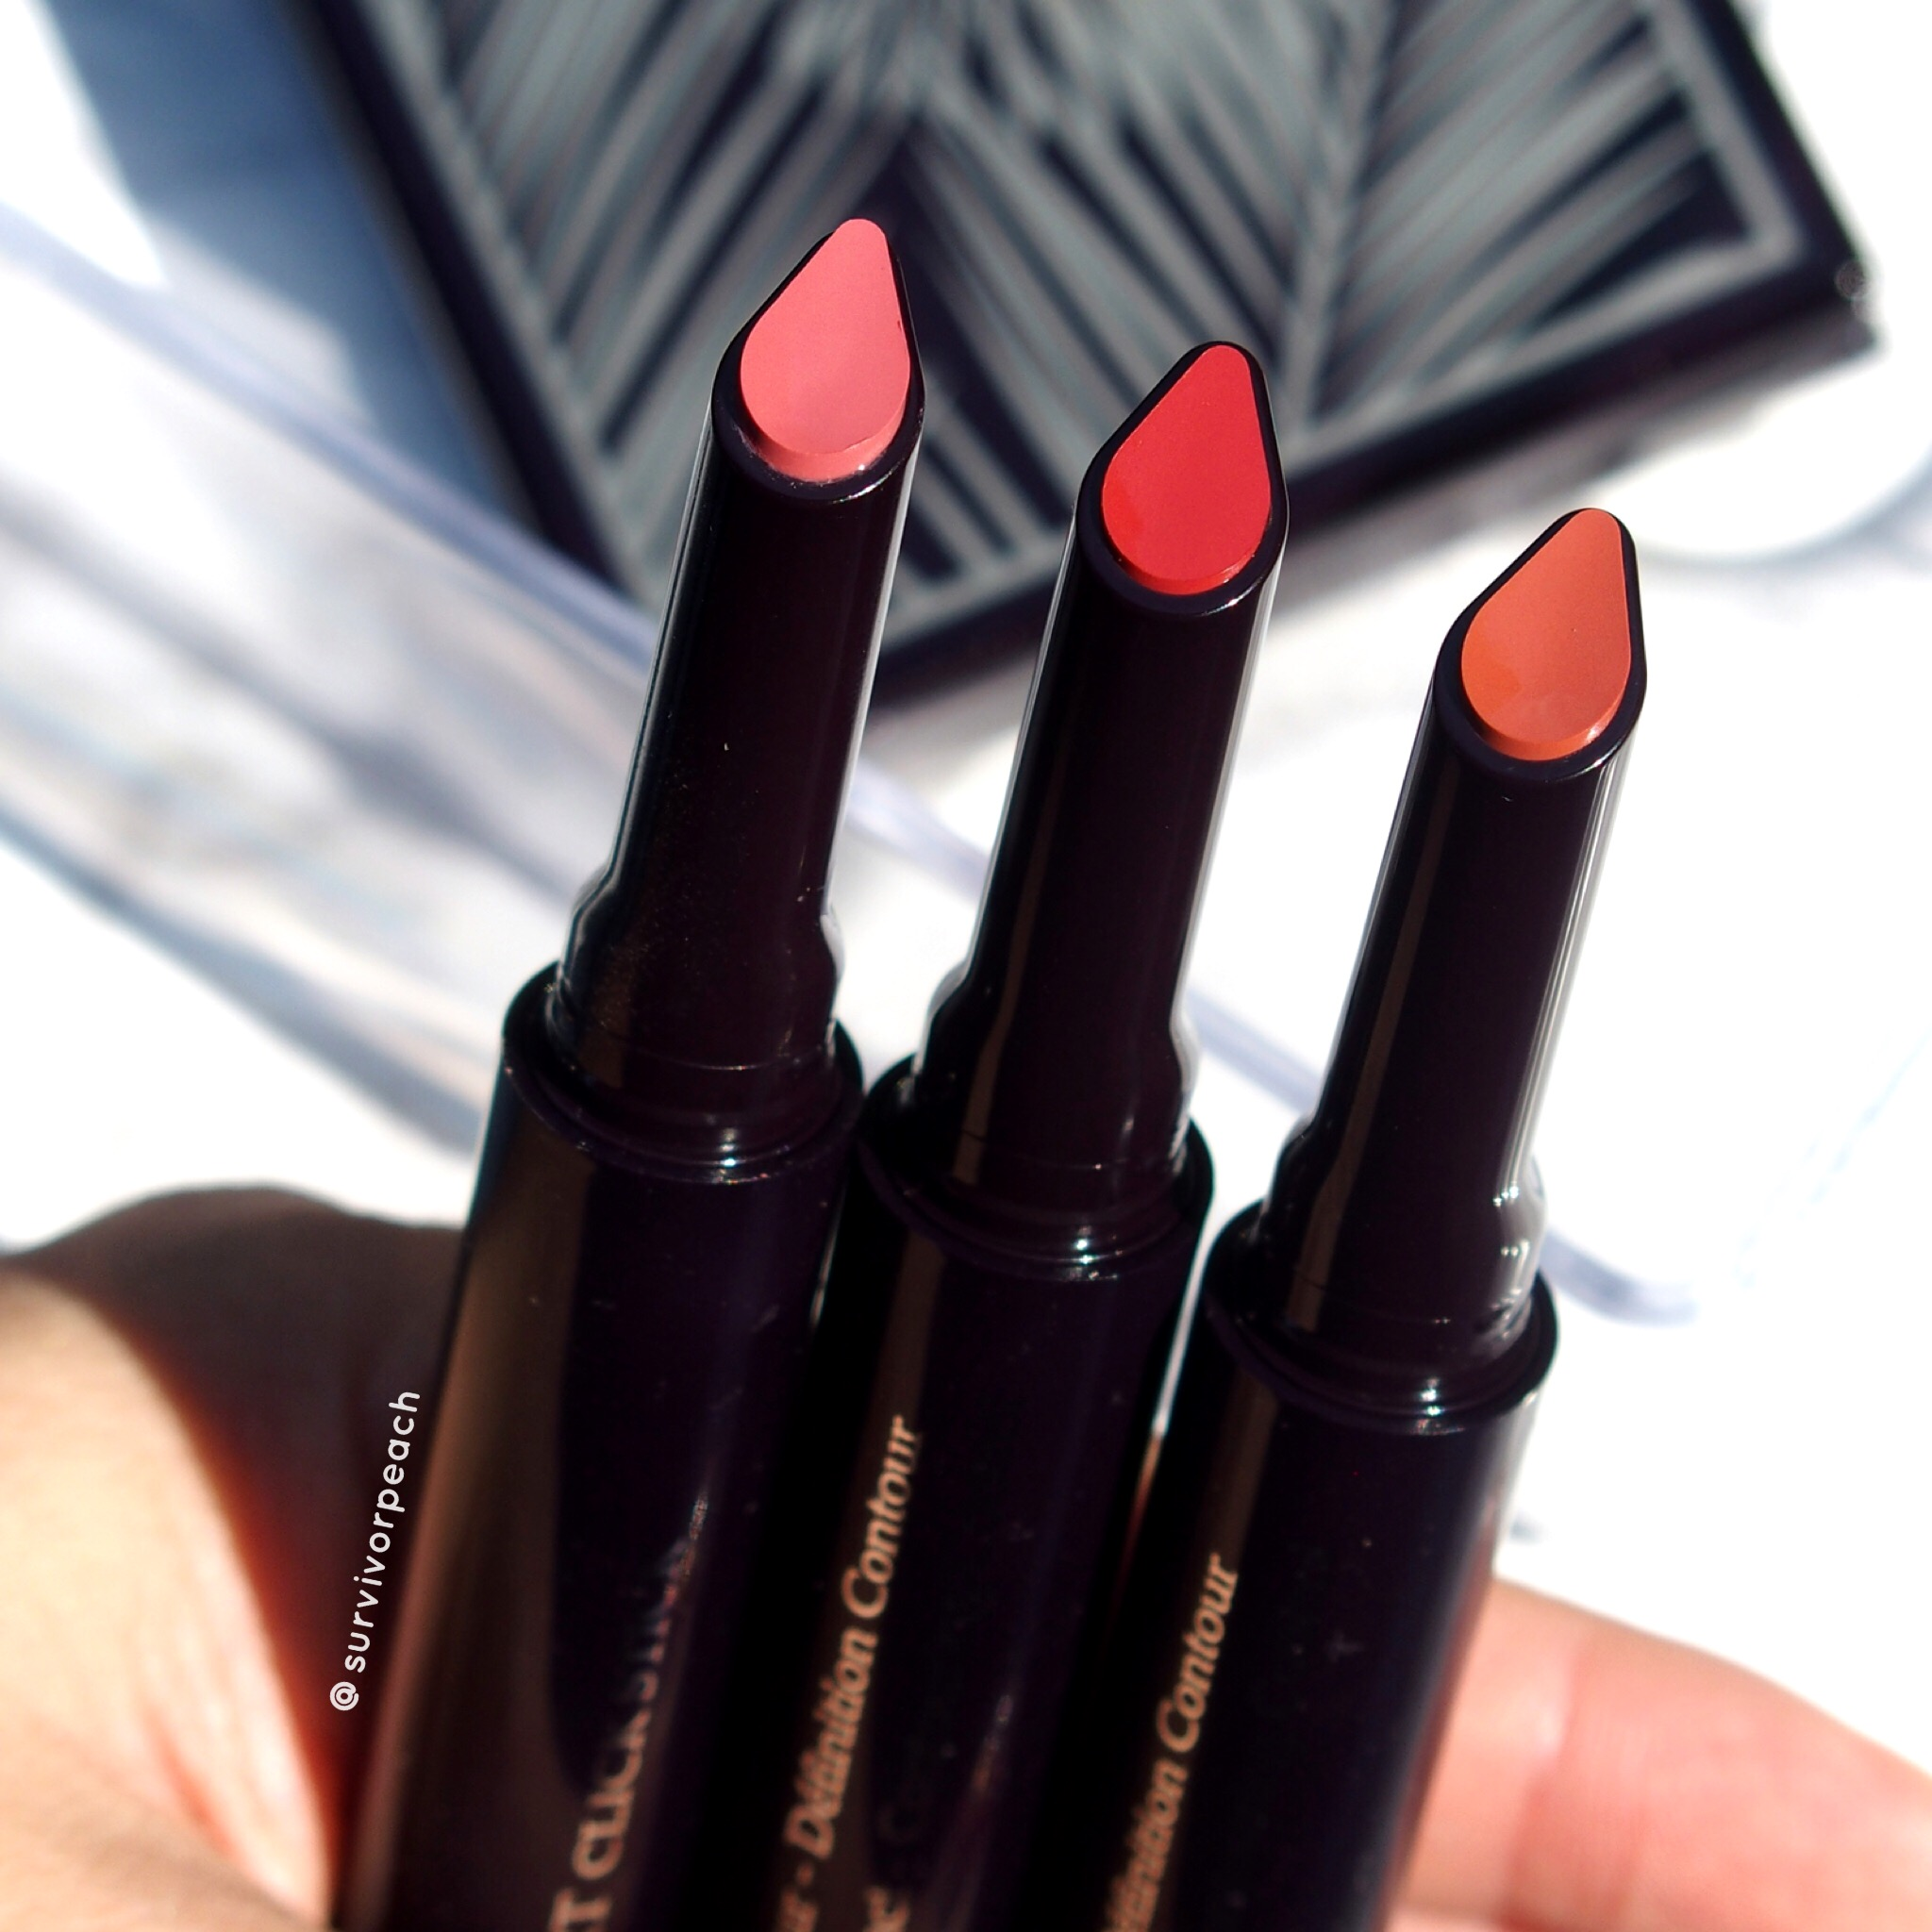 Rouge Expert Click sticks in #6 Rosy Flush, #11 Baby Brick, and #12 Naked Nectar.